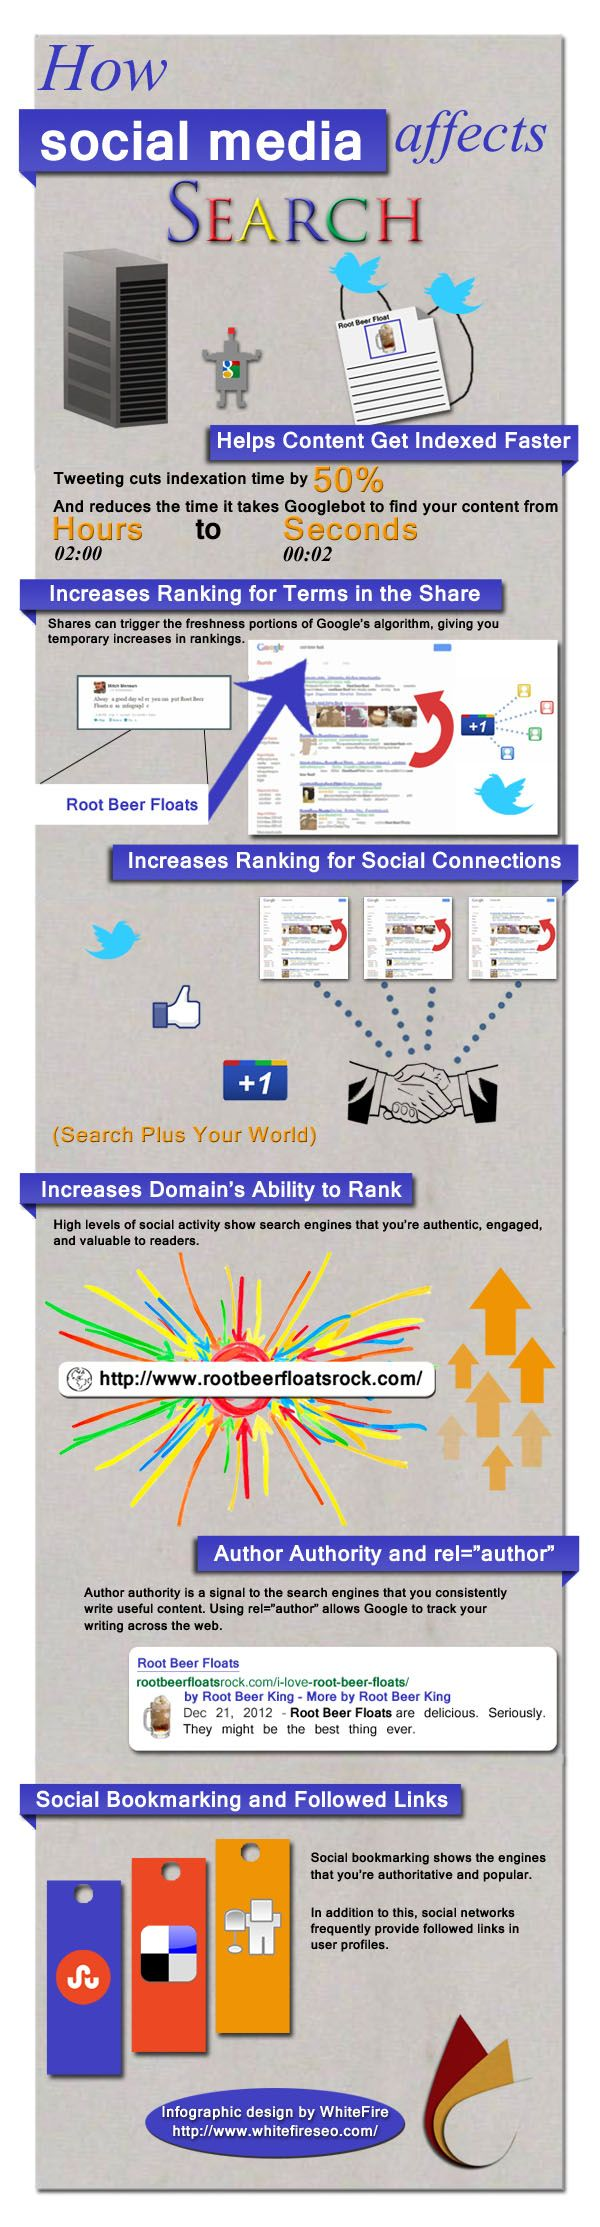 Ways that #socialmedia influences the visibility of your #website in search results, including:    Social media can help search engines find and index your content faster       Likes, shares, retweets, etc. indicates to search engine that content is new and interesting, often leading to a temporary increase in rankings      Your #content will increase in search results for people connected to you